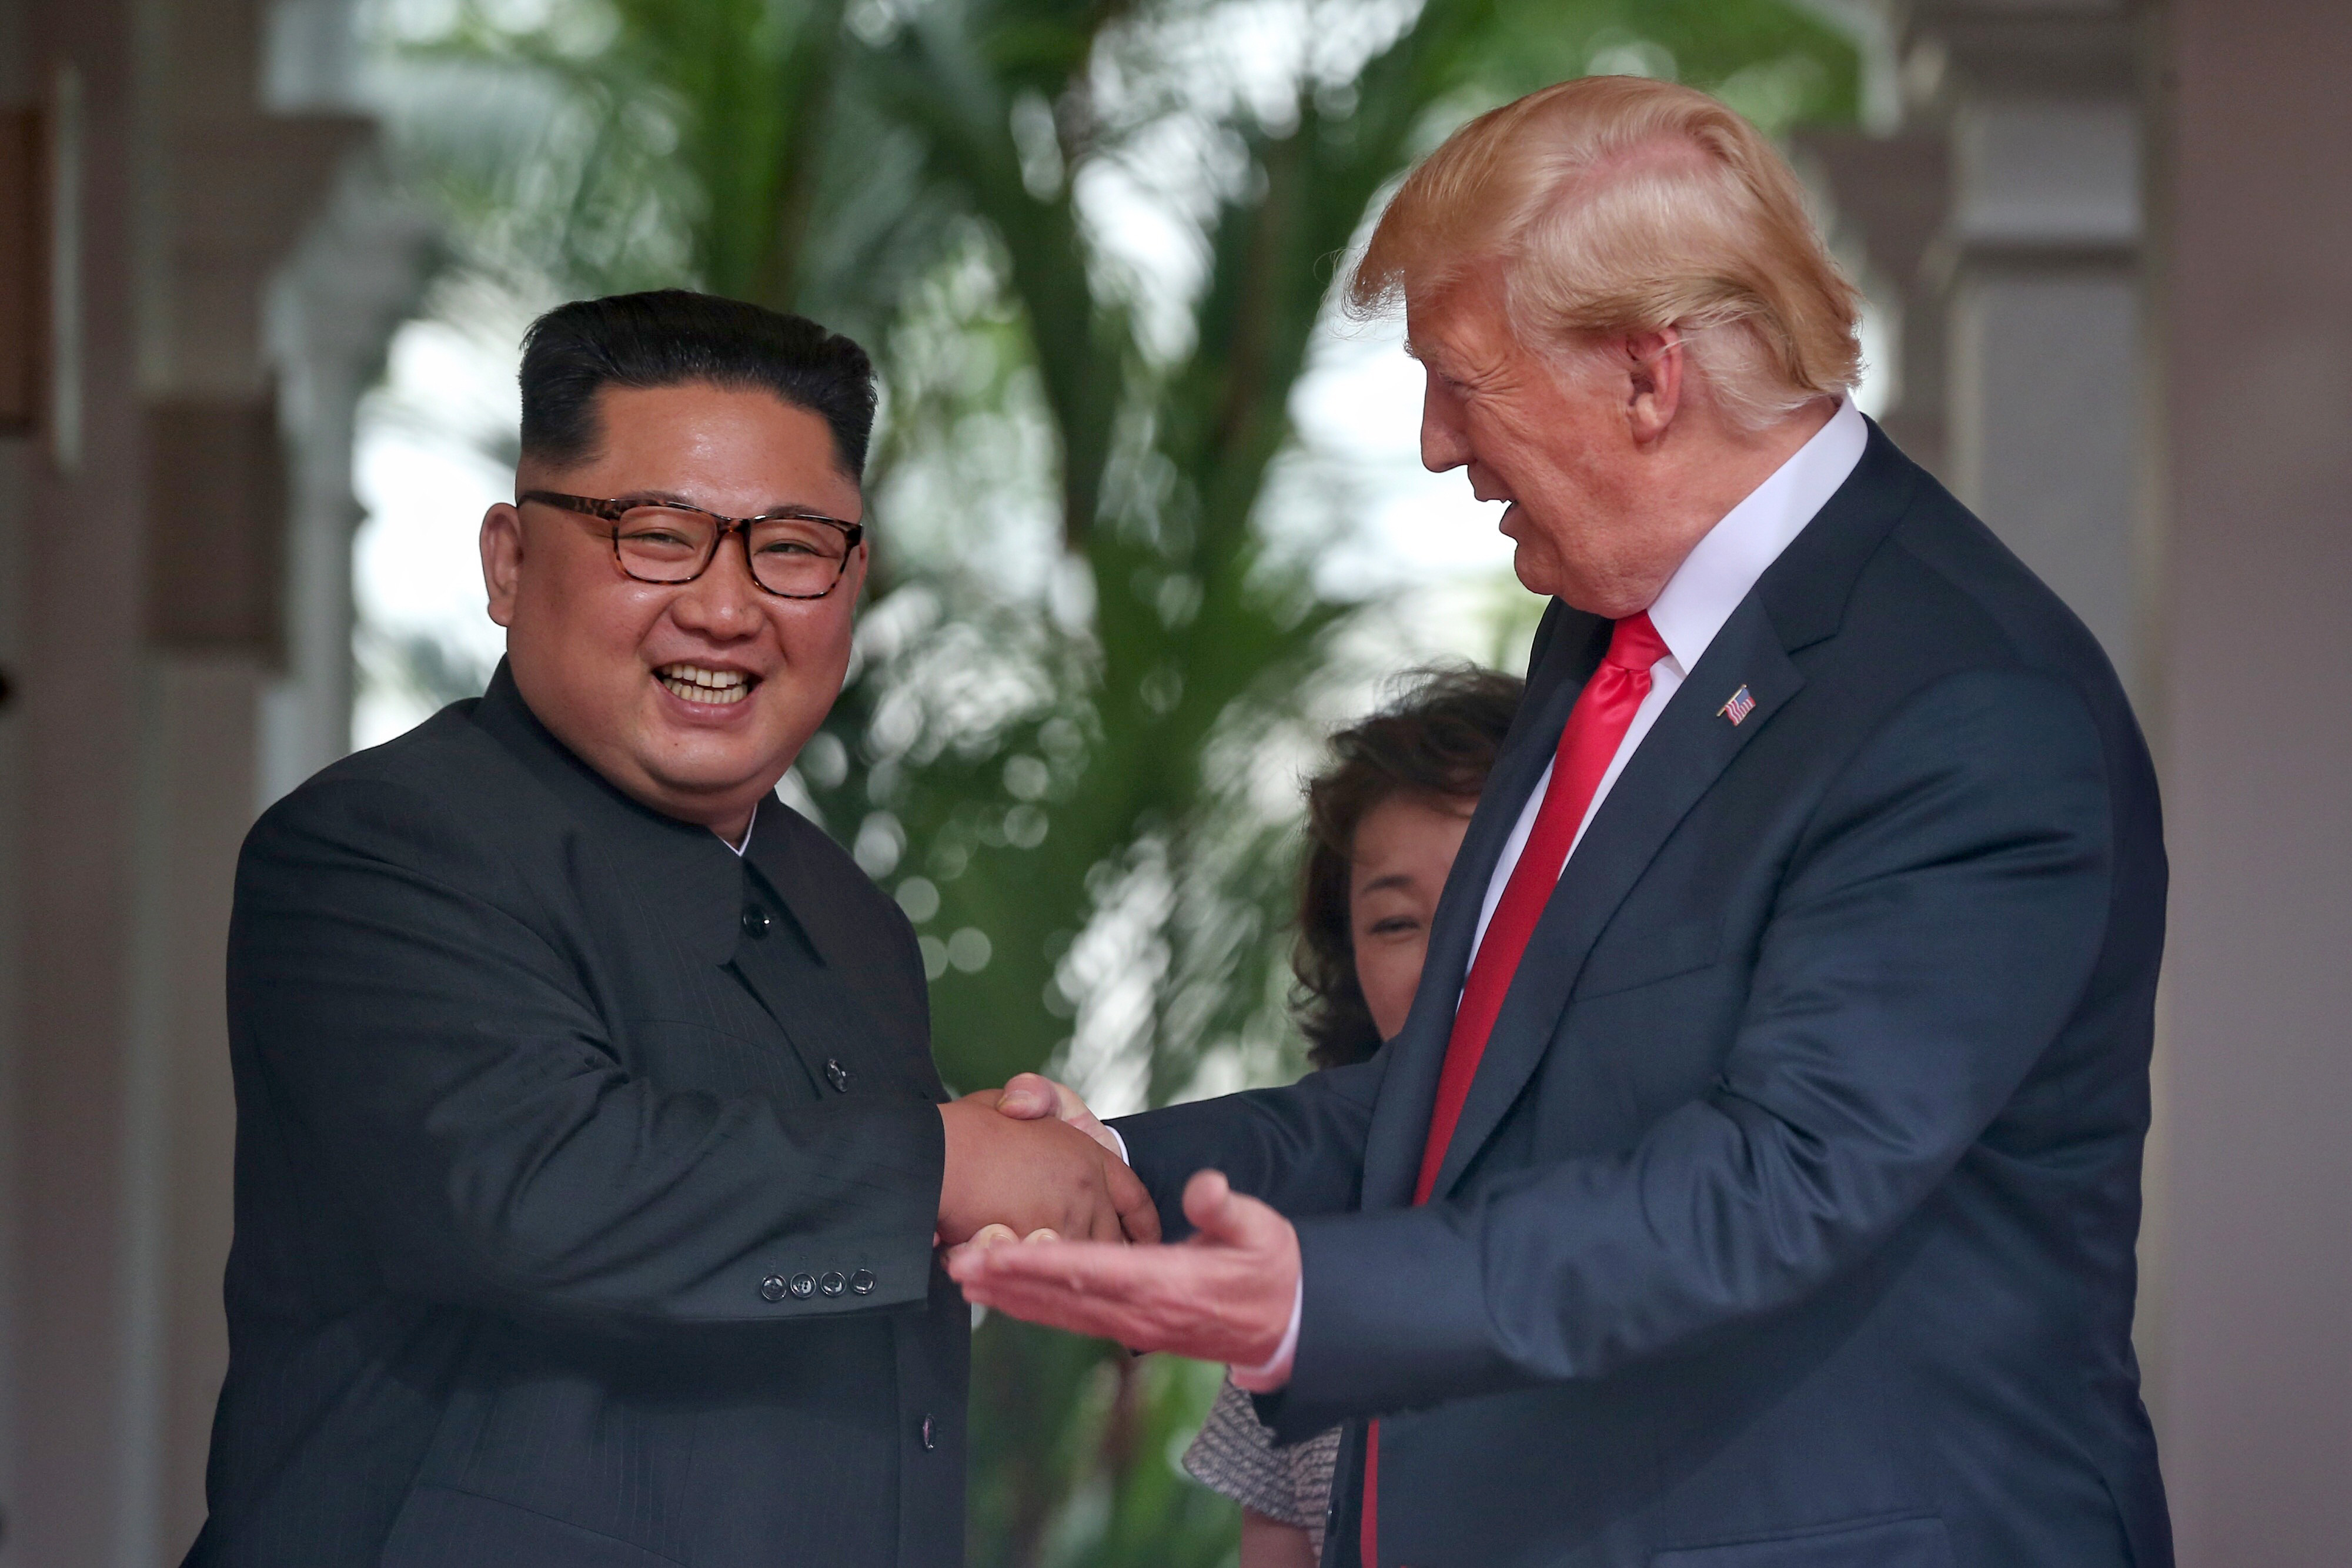 North Korean leader Kim Jong-un shakes hands with U.S. President Donald Trump during their summit at the Capella Hotel on Sentosa island, Singapore on June 12, 2018.